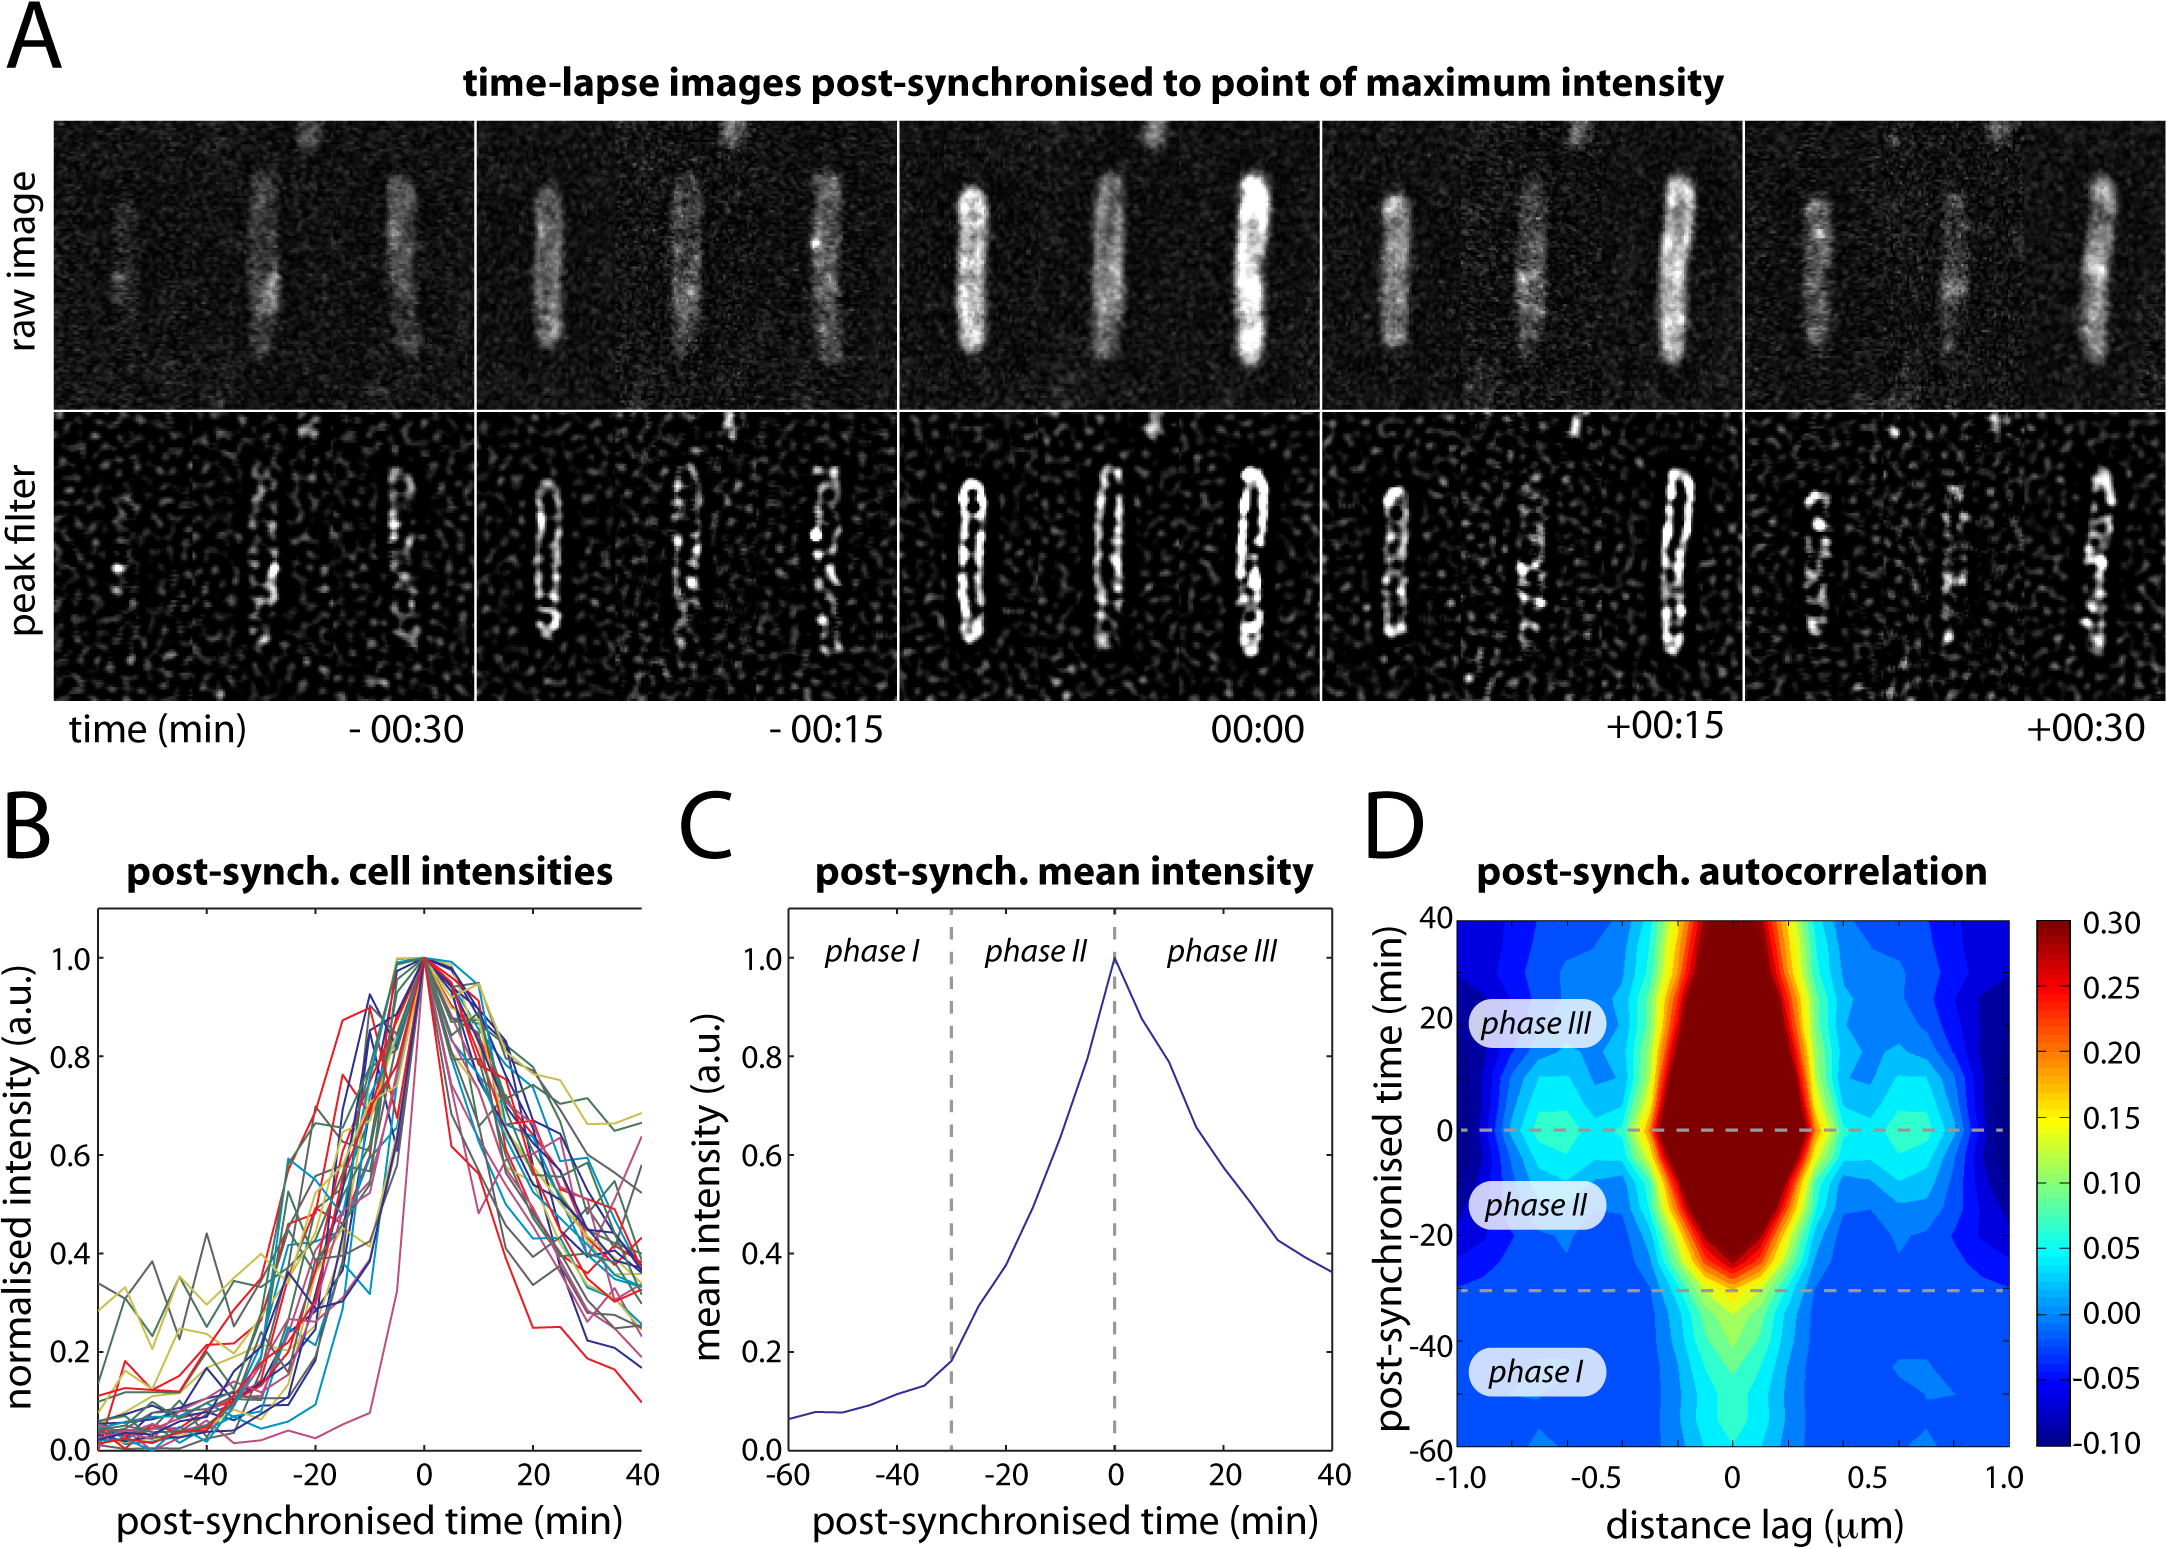 Post-synchronization of individual cells within time-lapse series (EAW282).